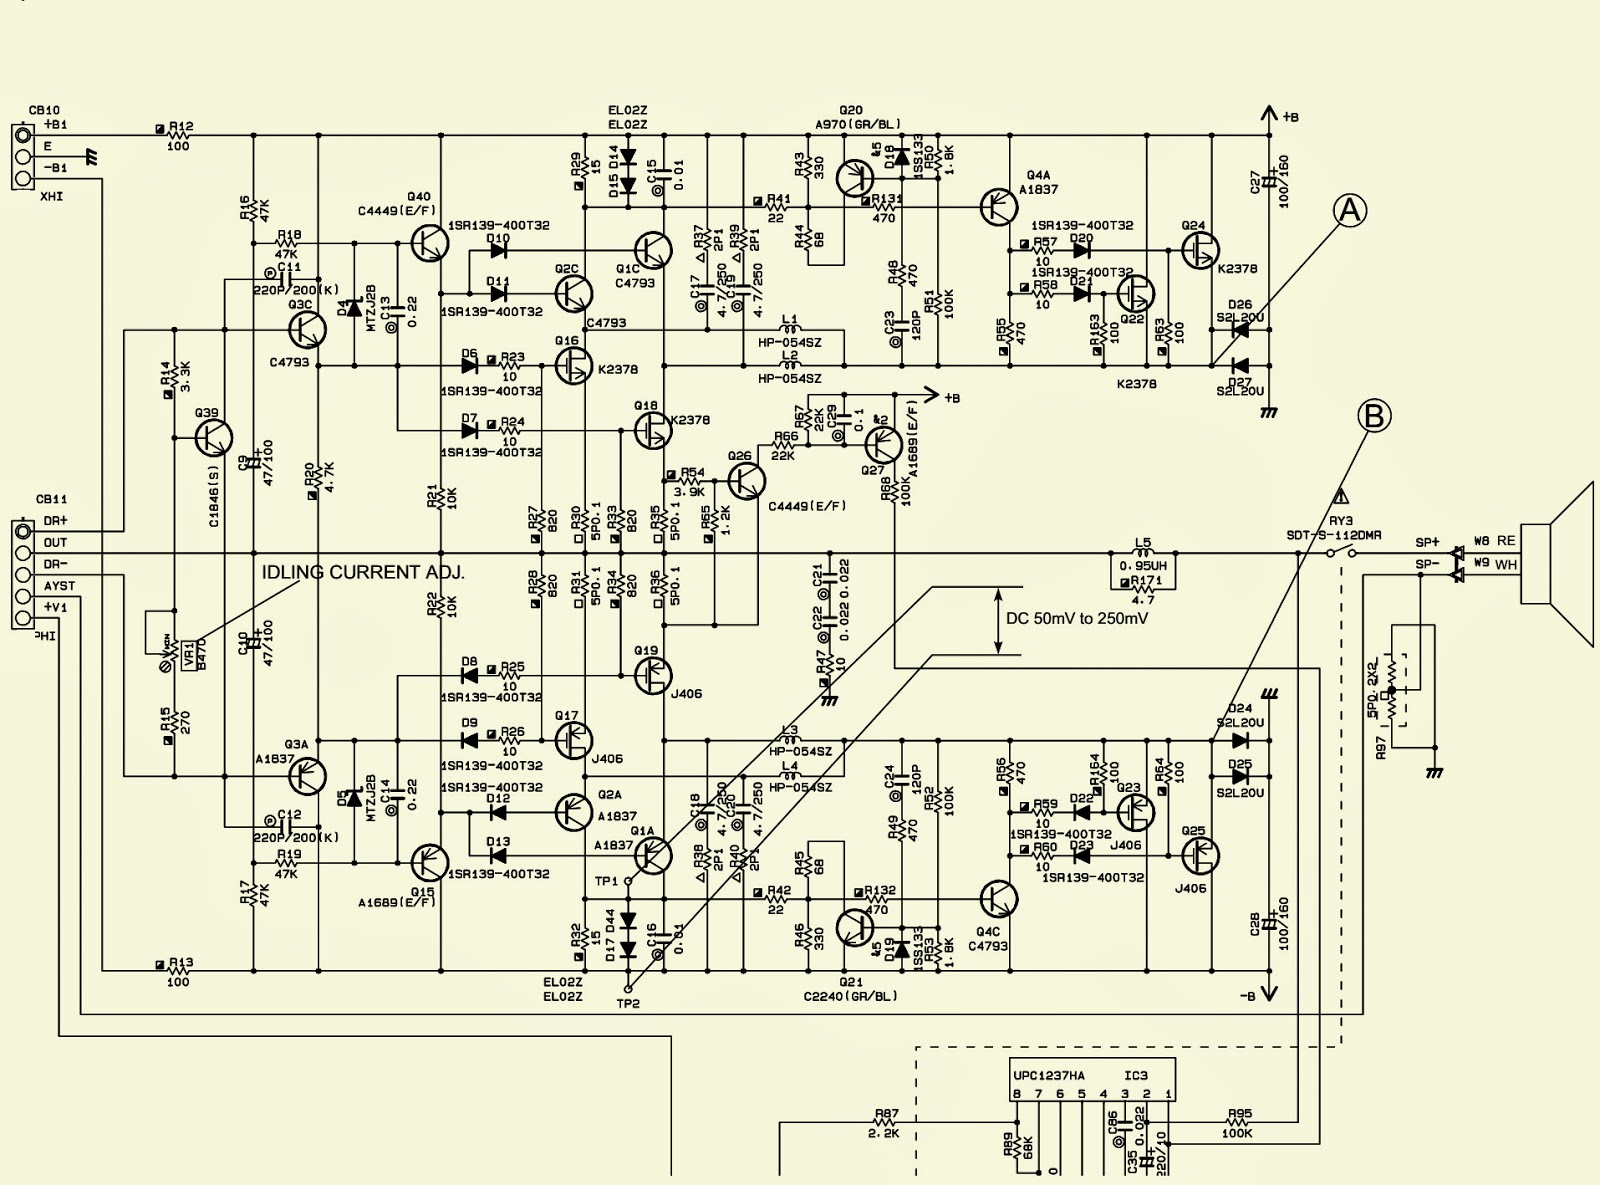 Logitech Speaker Wiring Example Electrical Diagram Klipsch Subwoofer Sub 10 Schematic Free Engine Wire Repair Colors